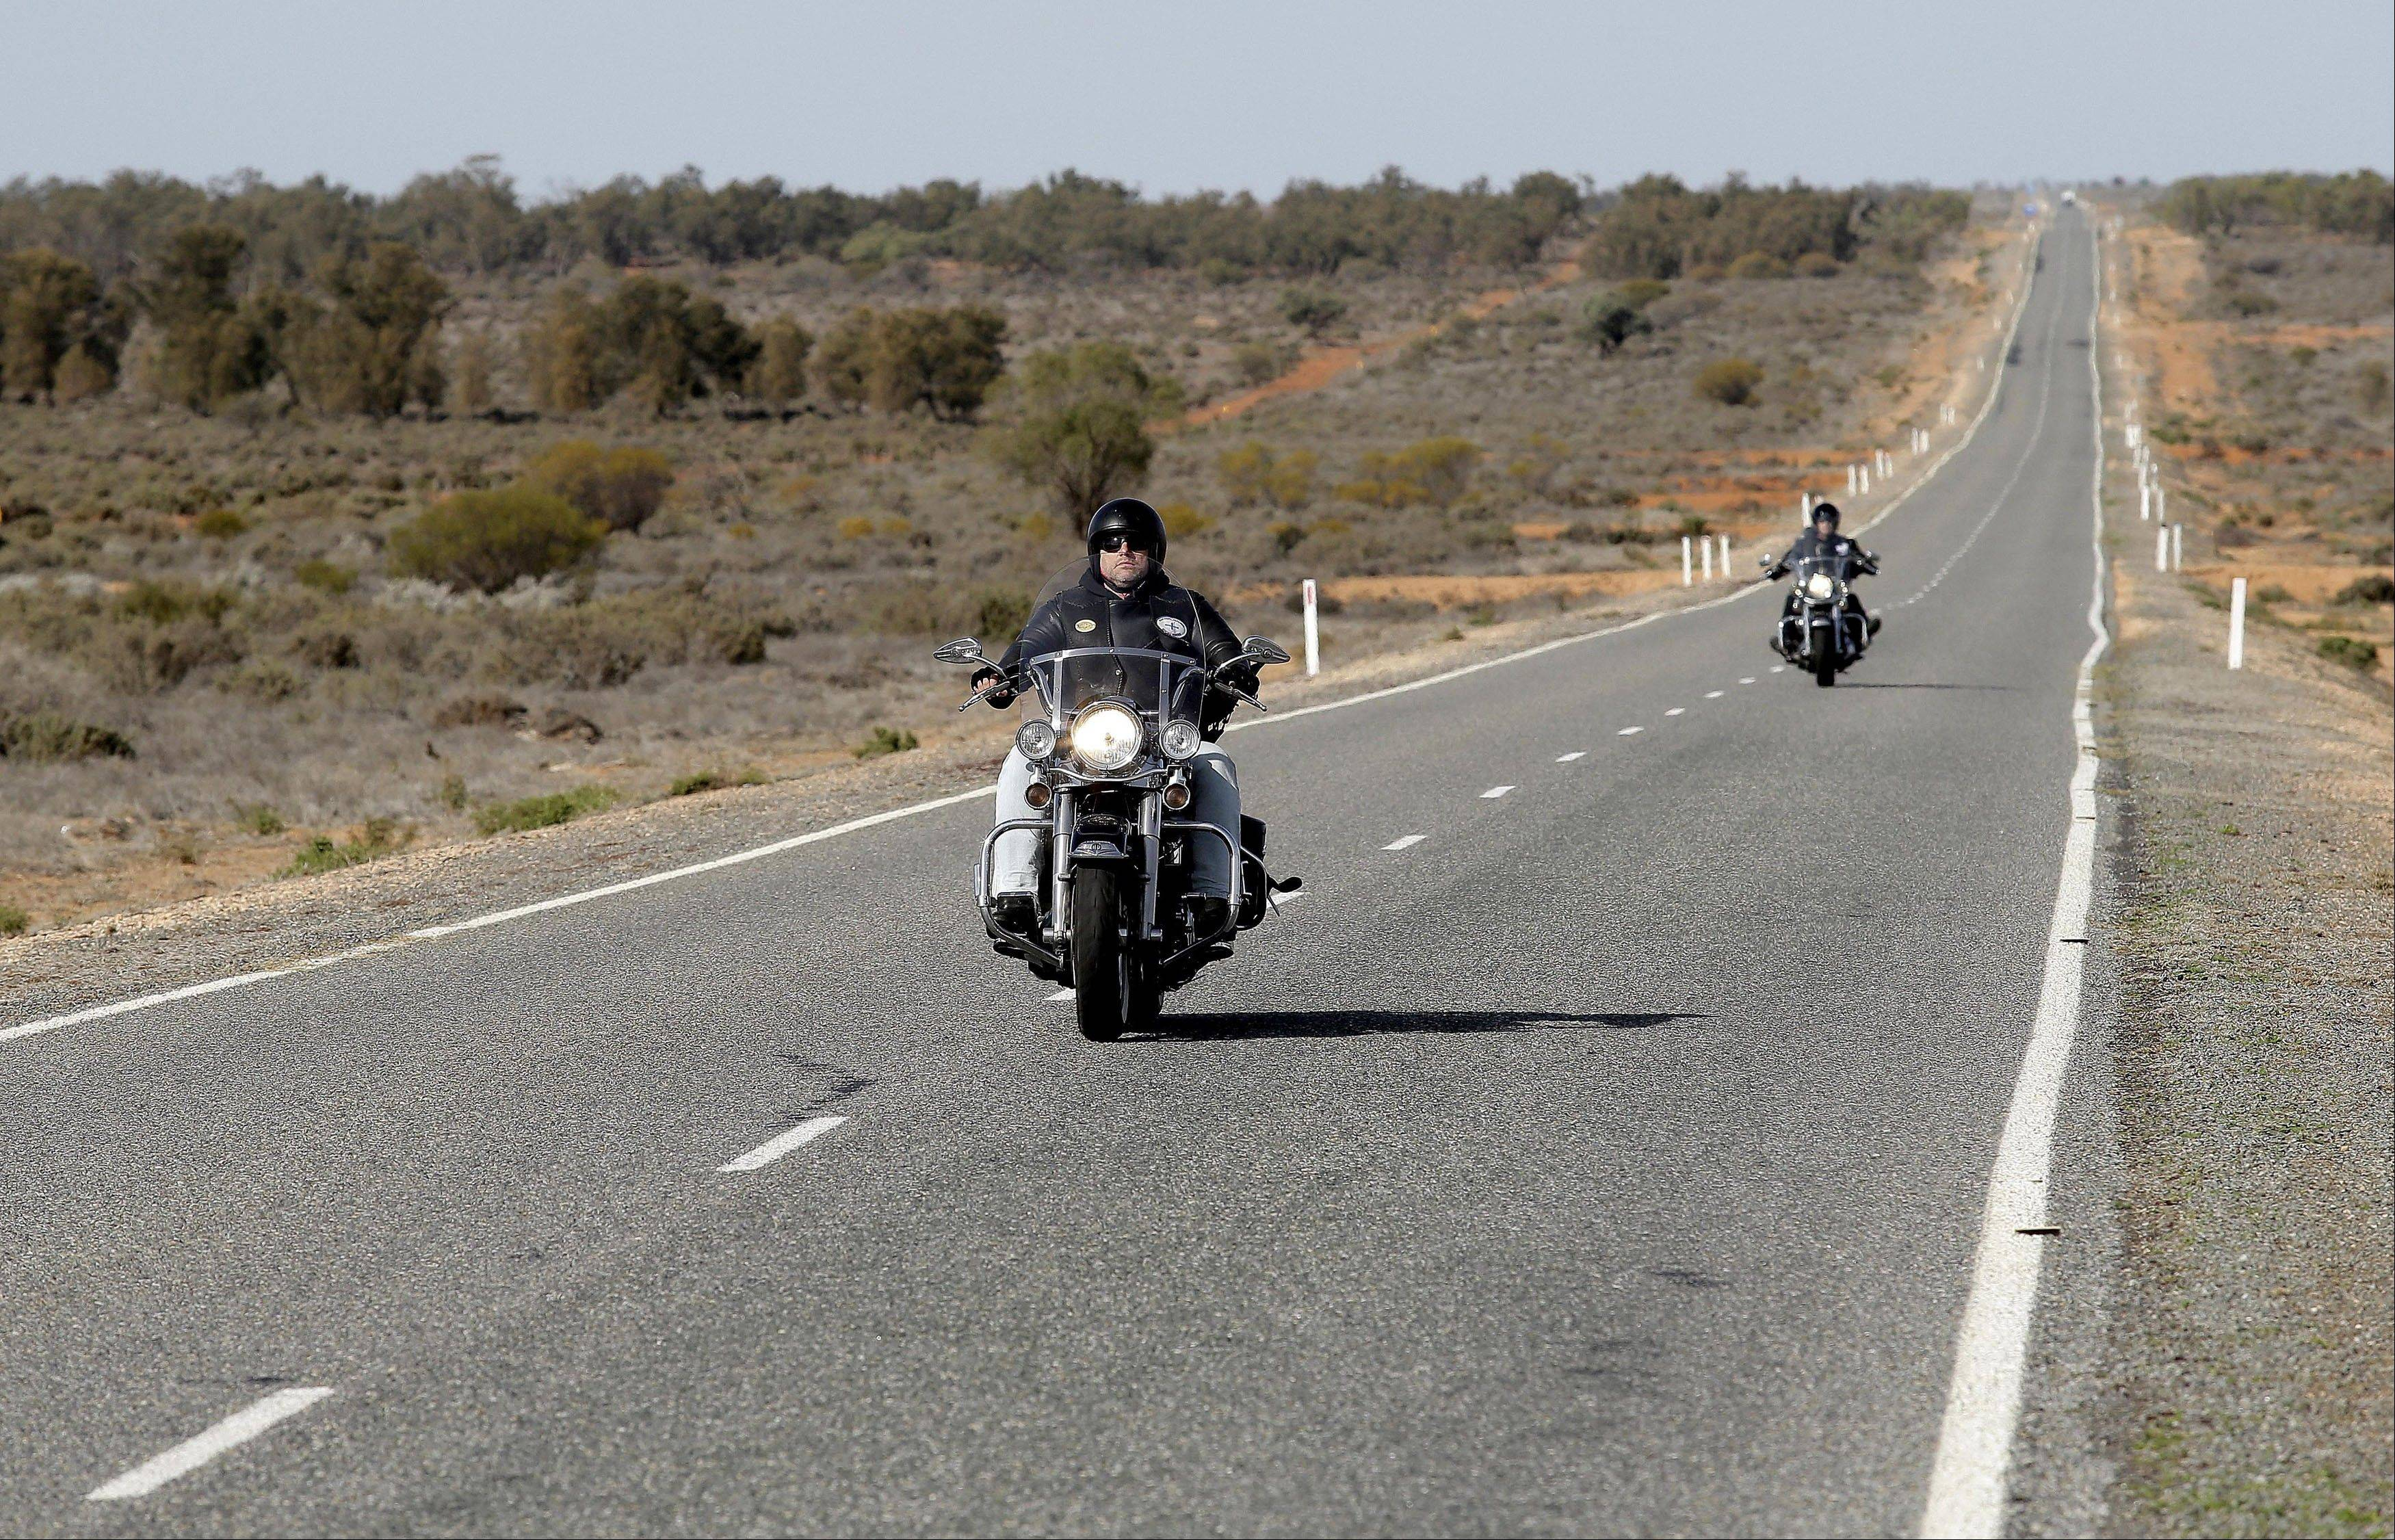 Motorcyclists pass along a long straight stretch of the Silver City Highway in Australia's Outback.